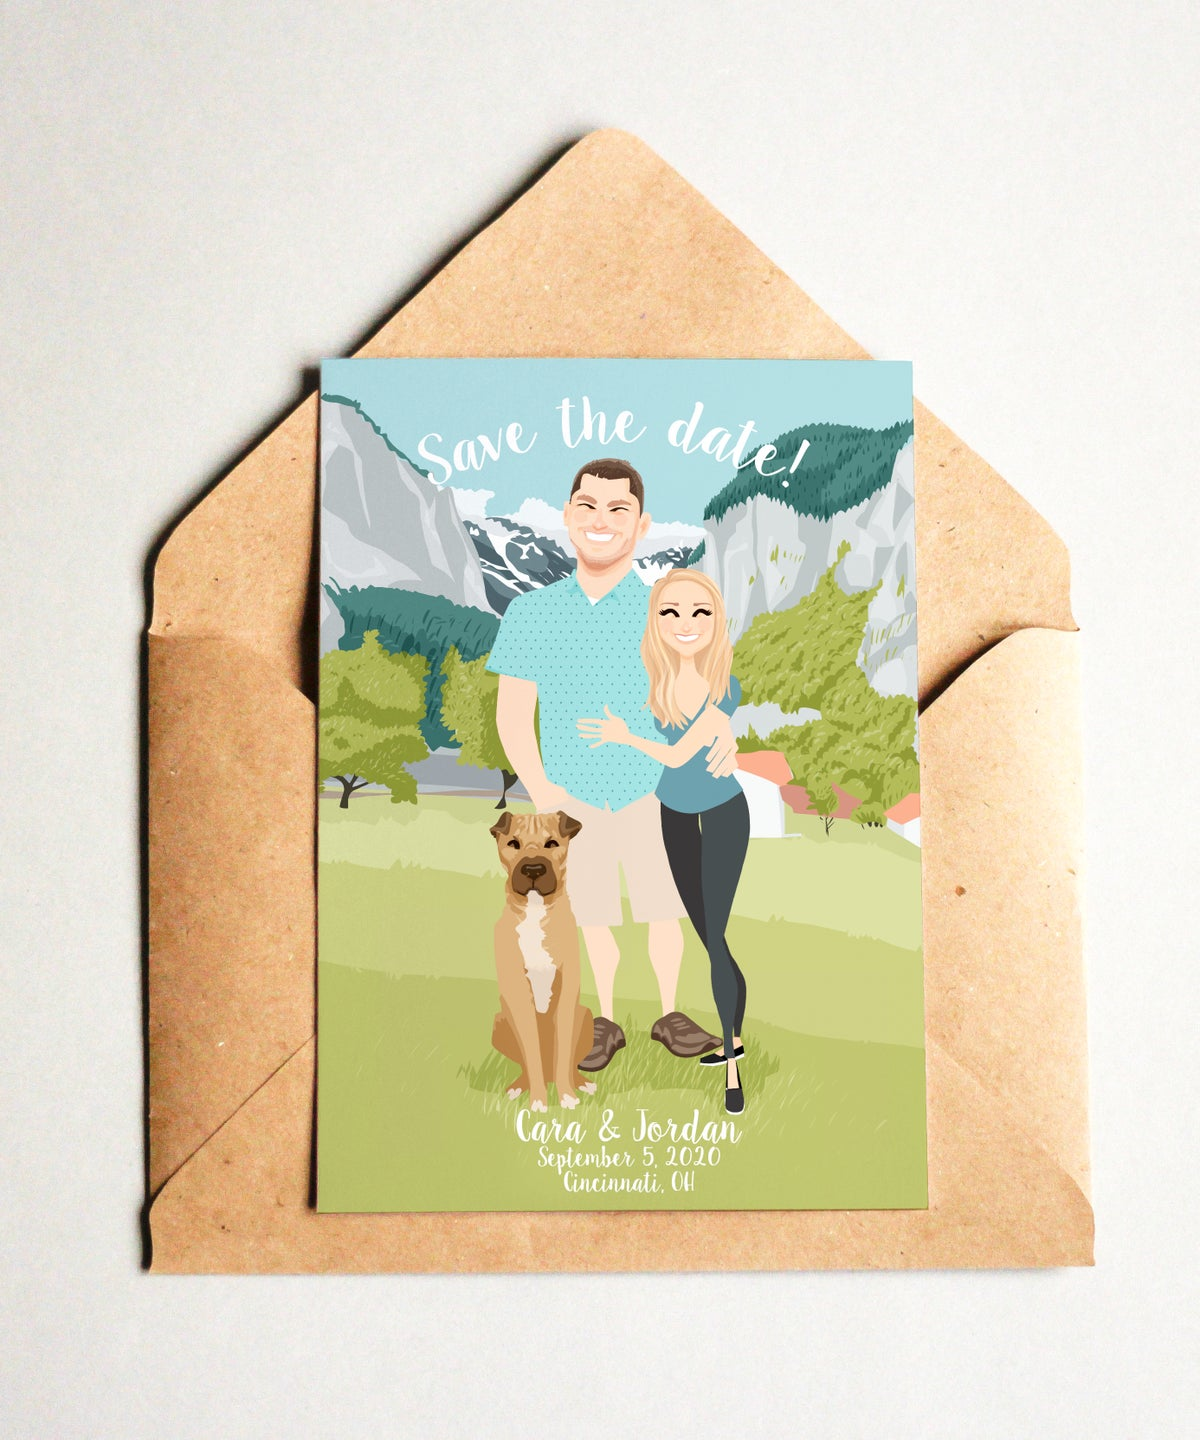 Image of Custom Save the Date with detailed background